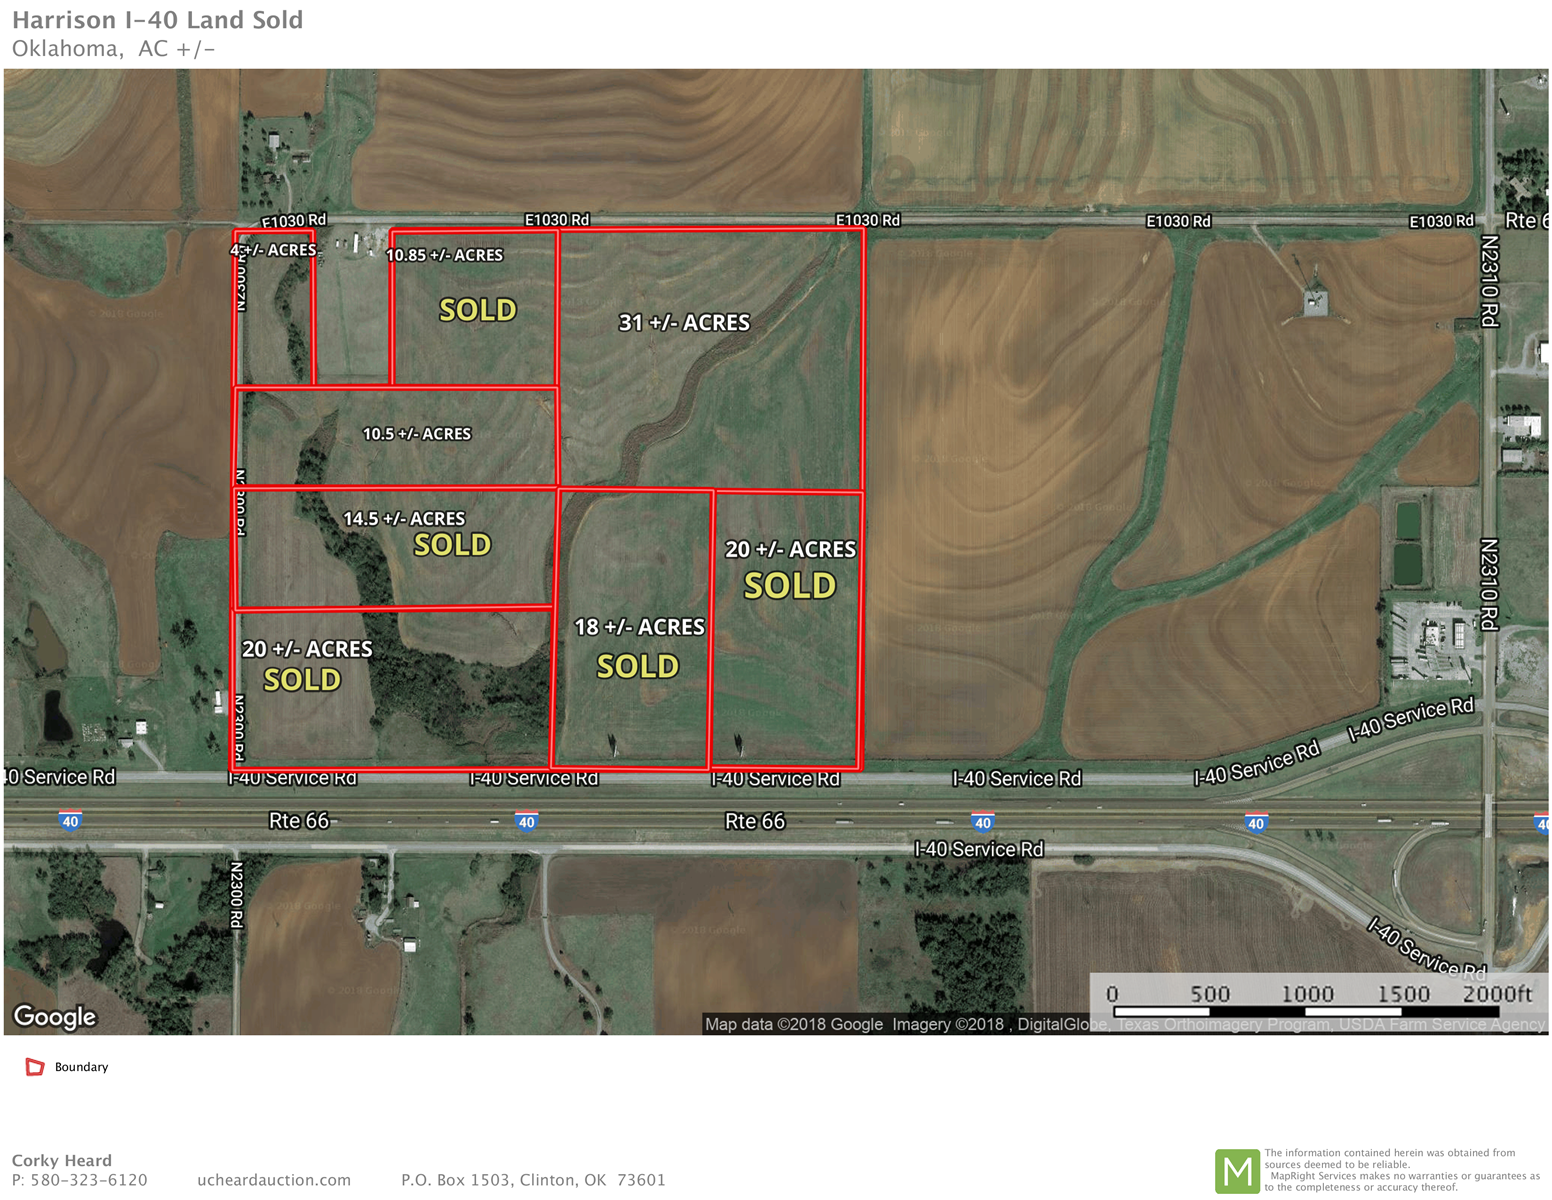 Acreage for Sale, Clinton , OK